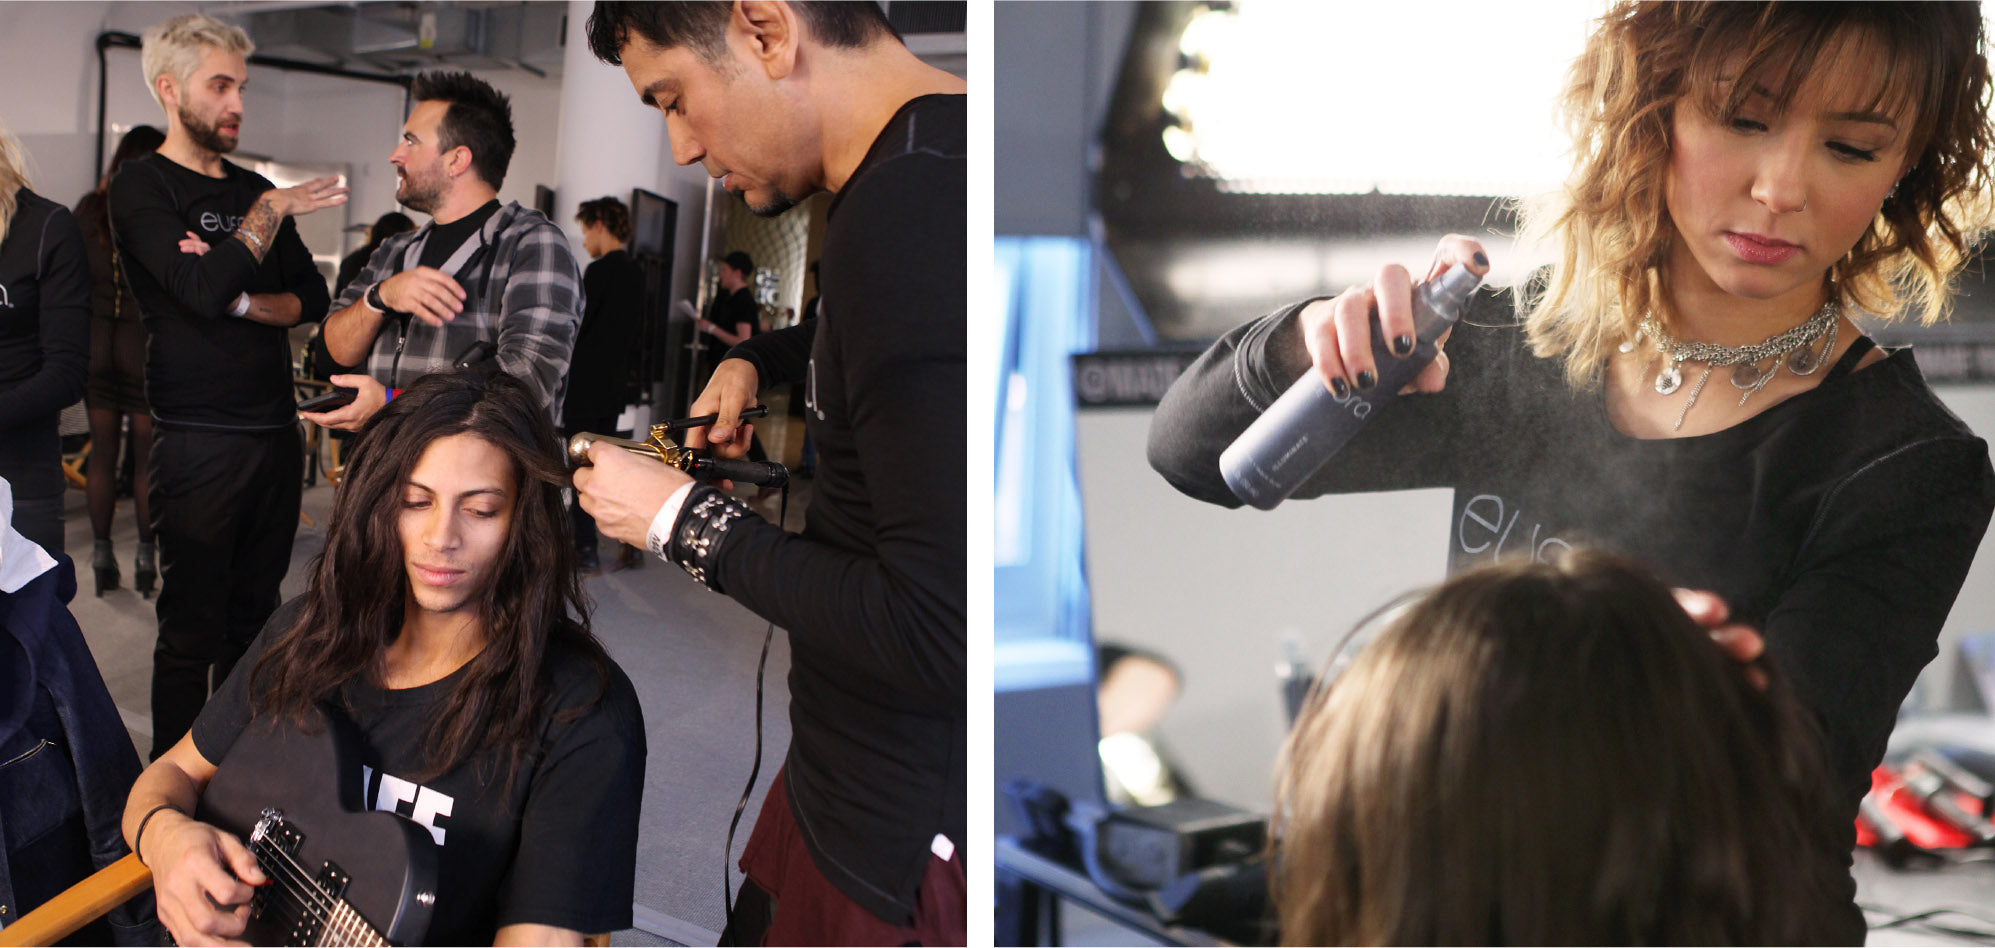 Hairstylists performing techniques on models